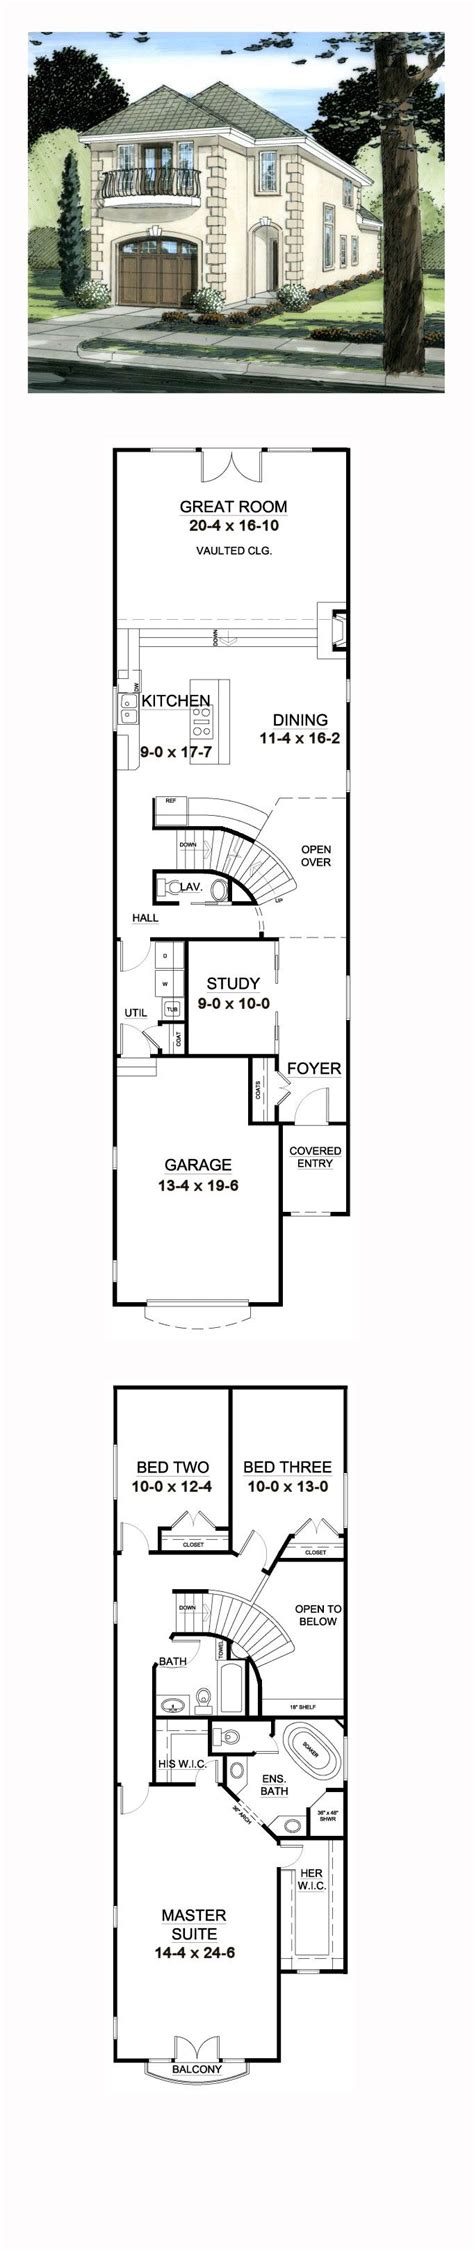 narrow house plans best 25 narrow house plans ideas on narrow lot house plans sims 4 houses layout